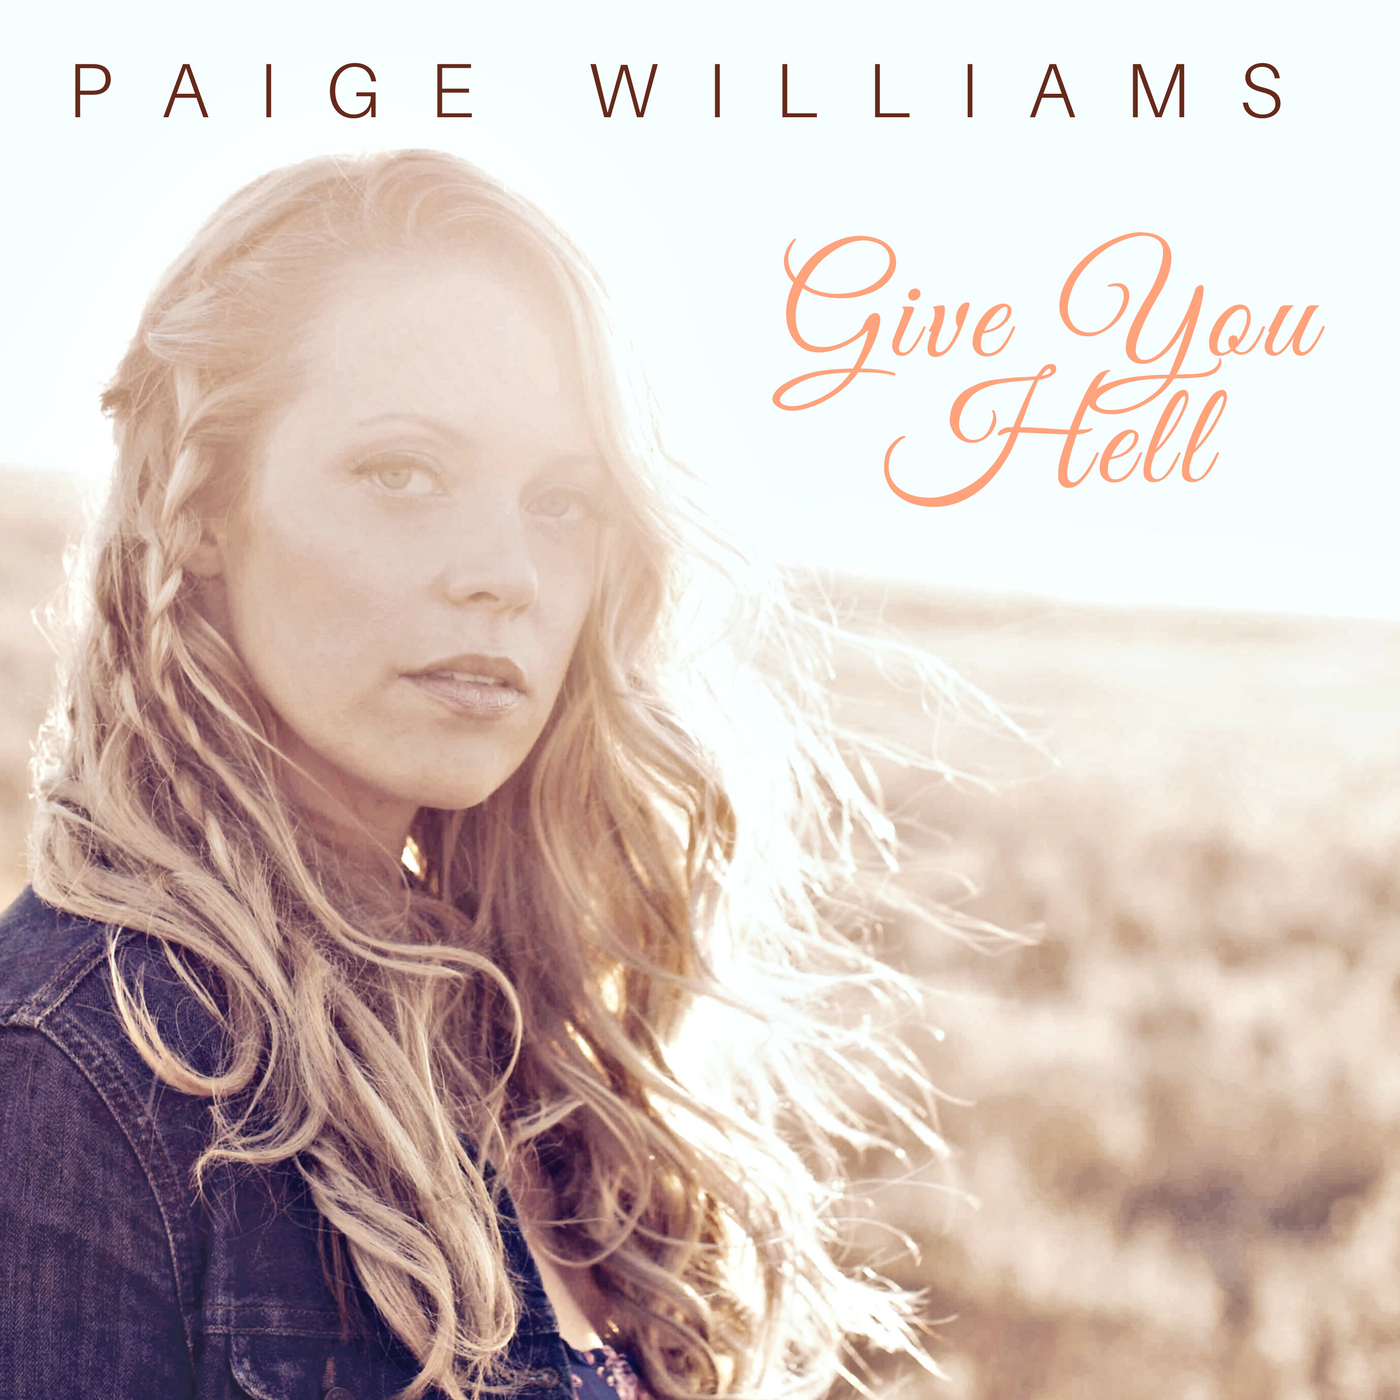 Paige Williams - Give You Hell - Single.png